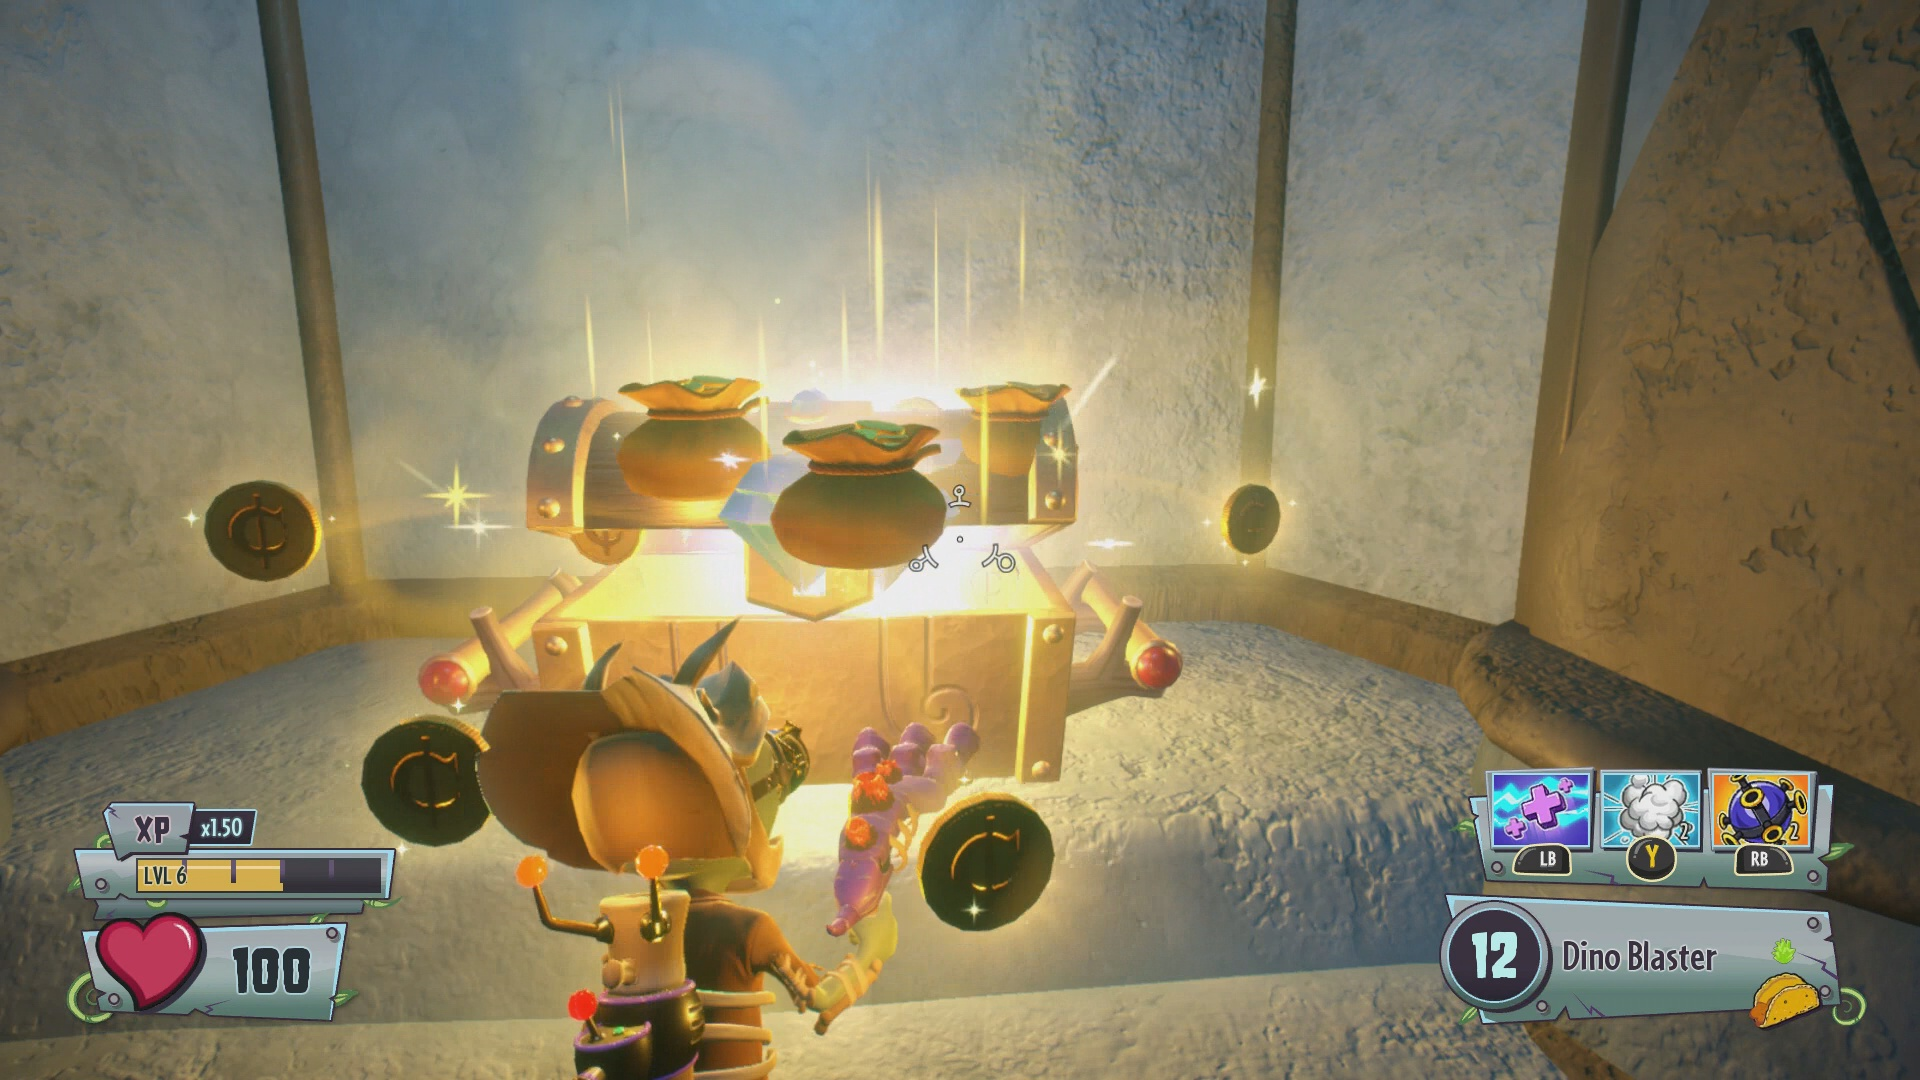 plants vs zombies garden warfare 2 free coin chests usgamer